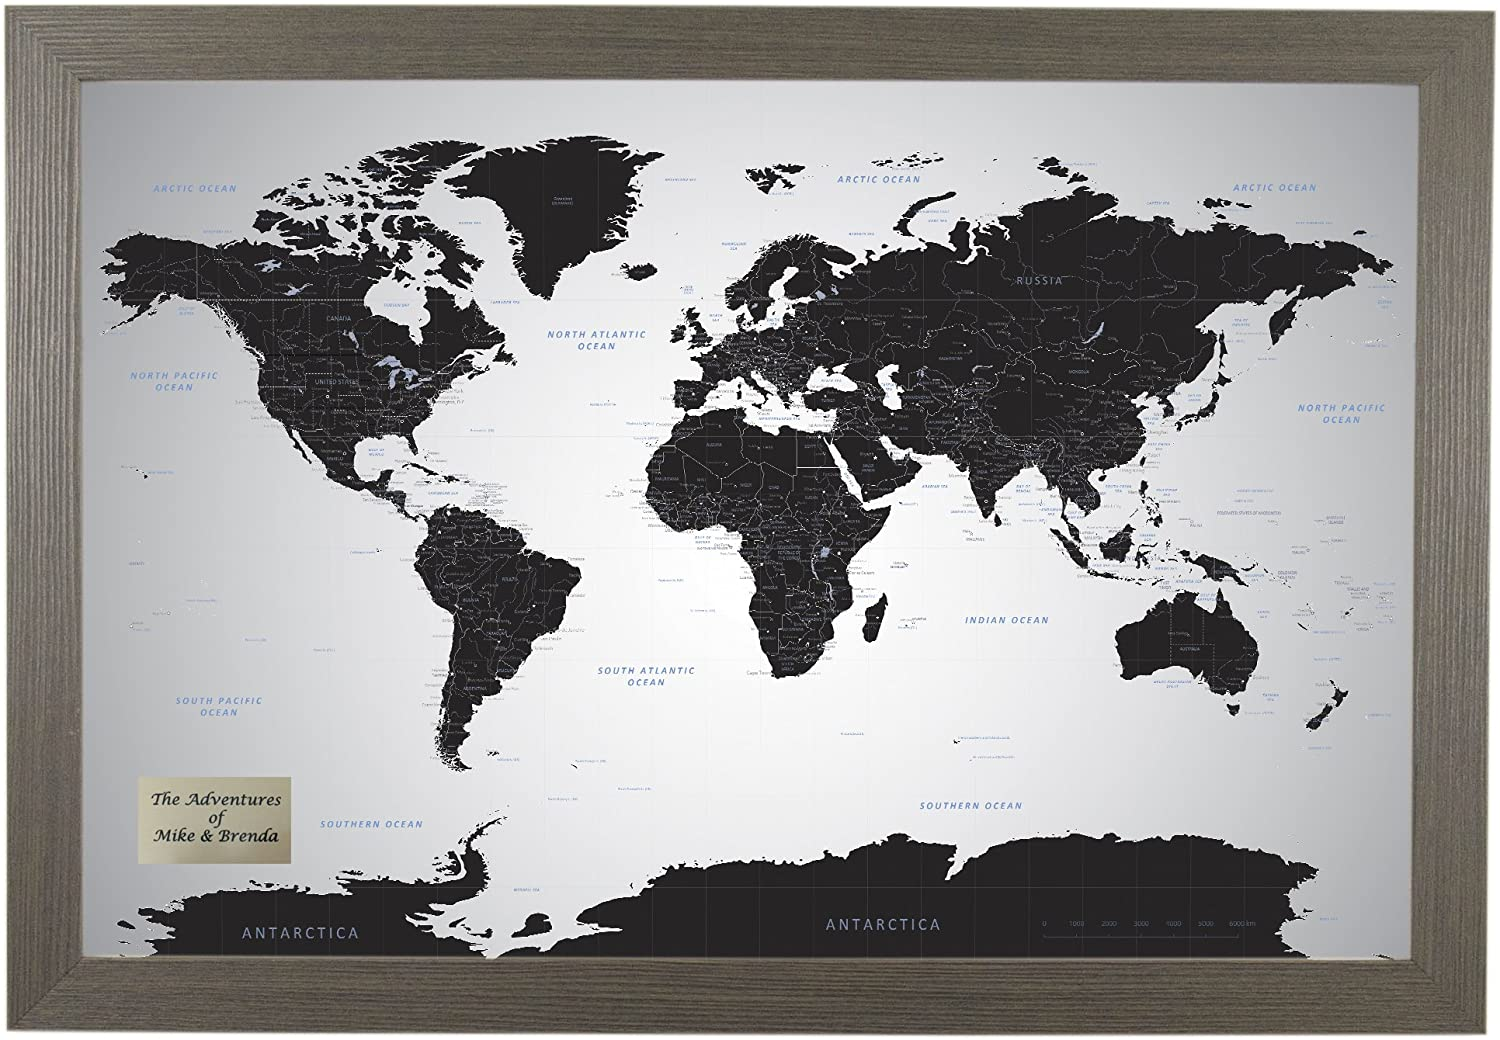 Push Pin Travel Maps Personalized Black Ice World with pins - 27.5 inches x 39.5 inches - Barnwood Gray Frame